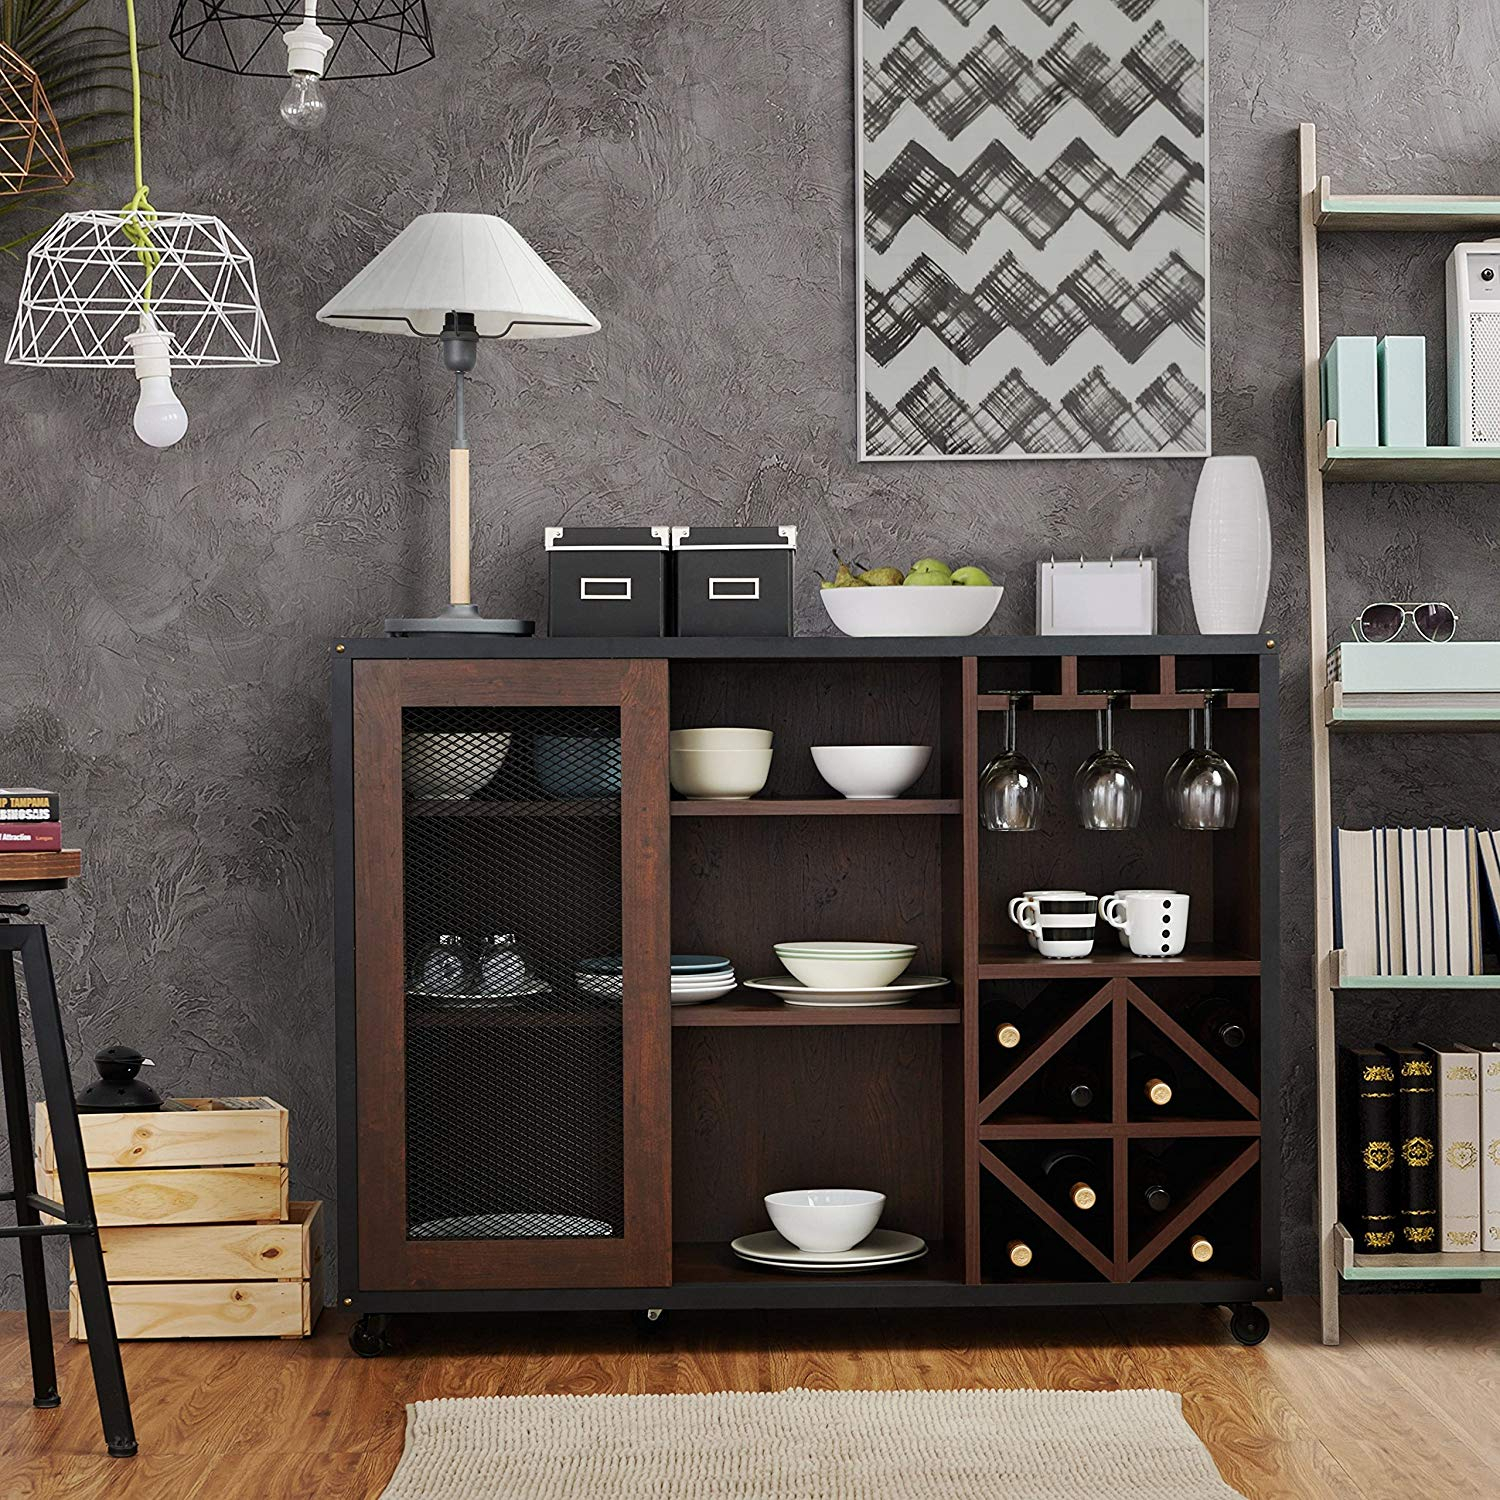 Cheap Stackable Storage Cubbies, Find Stackable Storage Intended For Espresso Sliding Door Stackable Buffets (View 24 of 30)